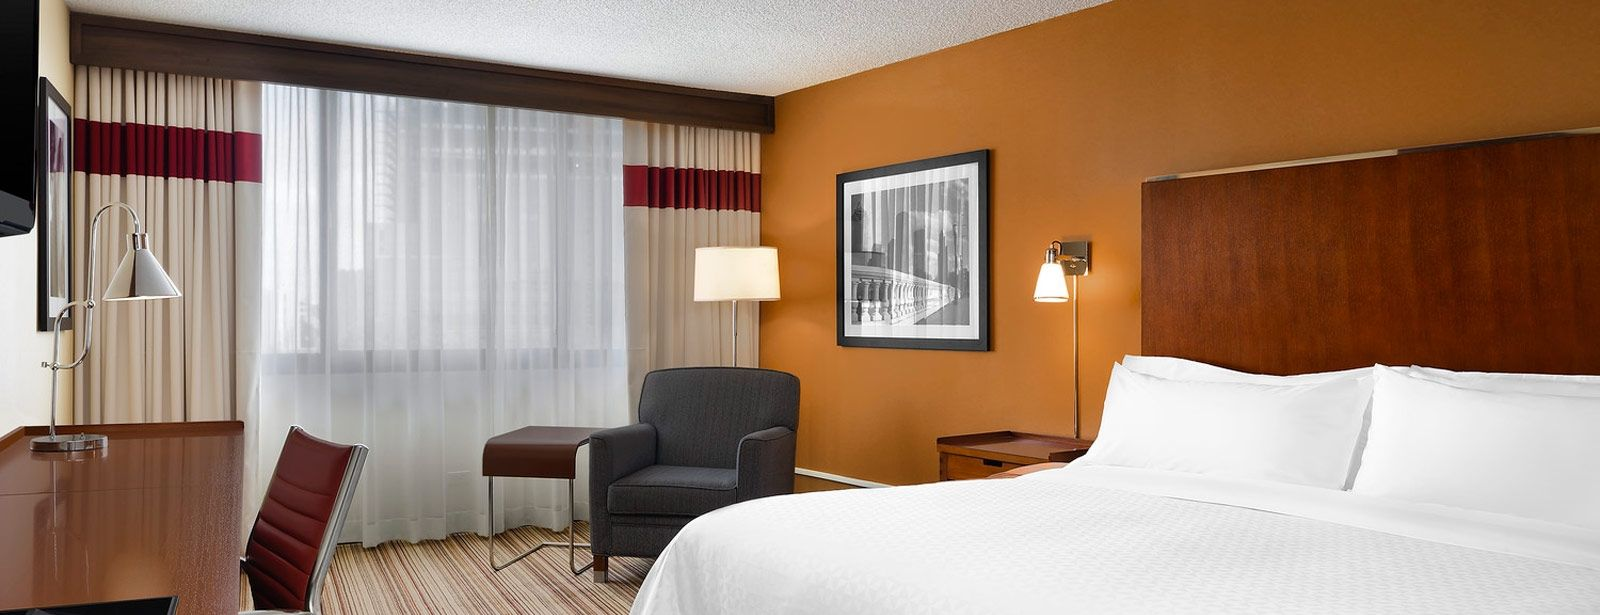 Houston Accommodations - Accessible Guest Room